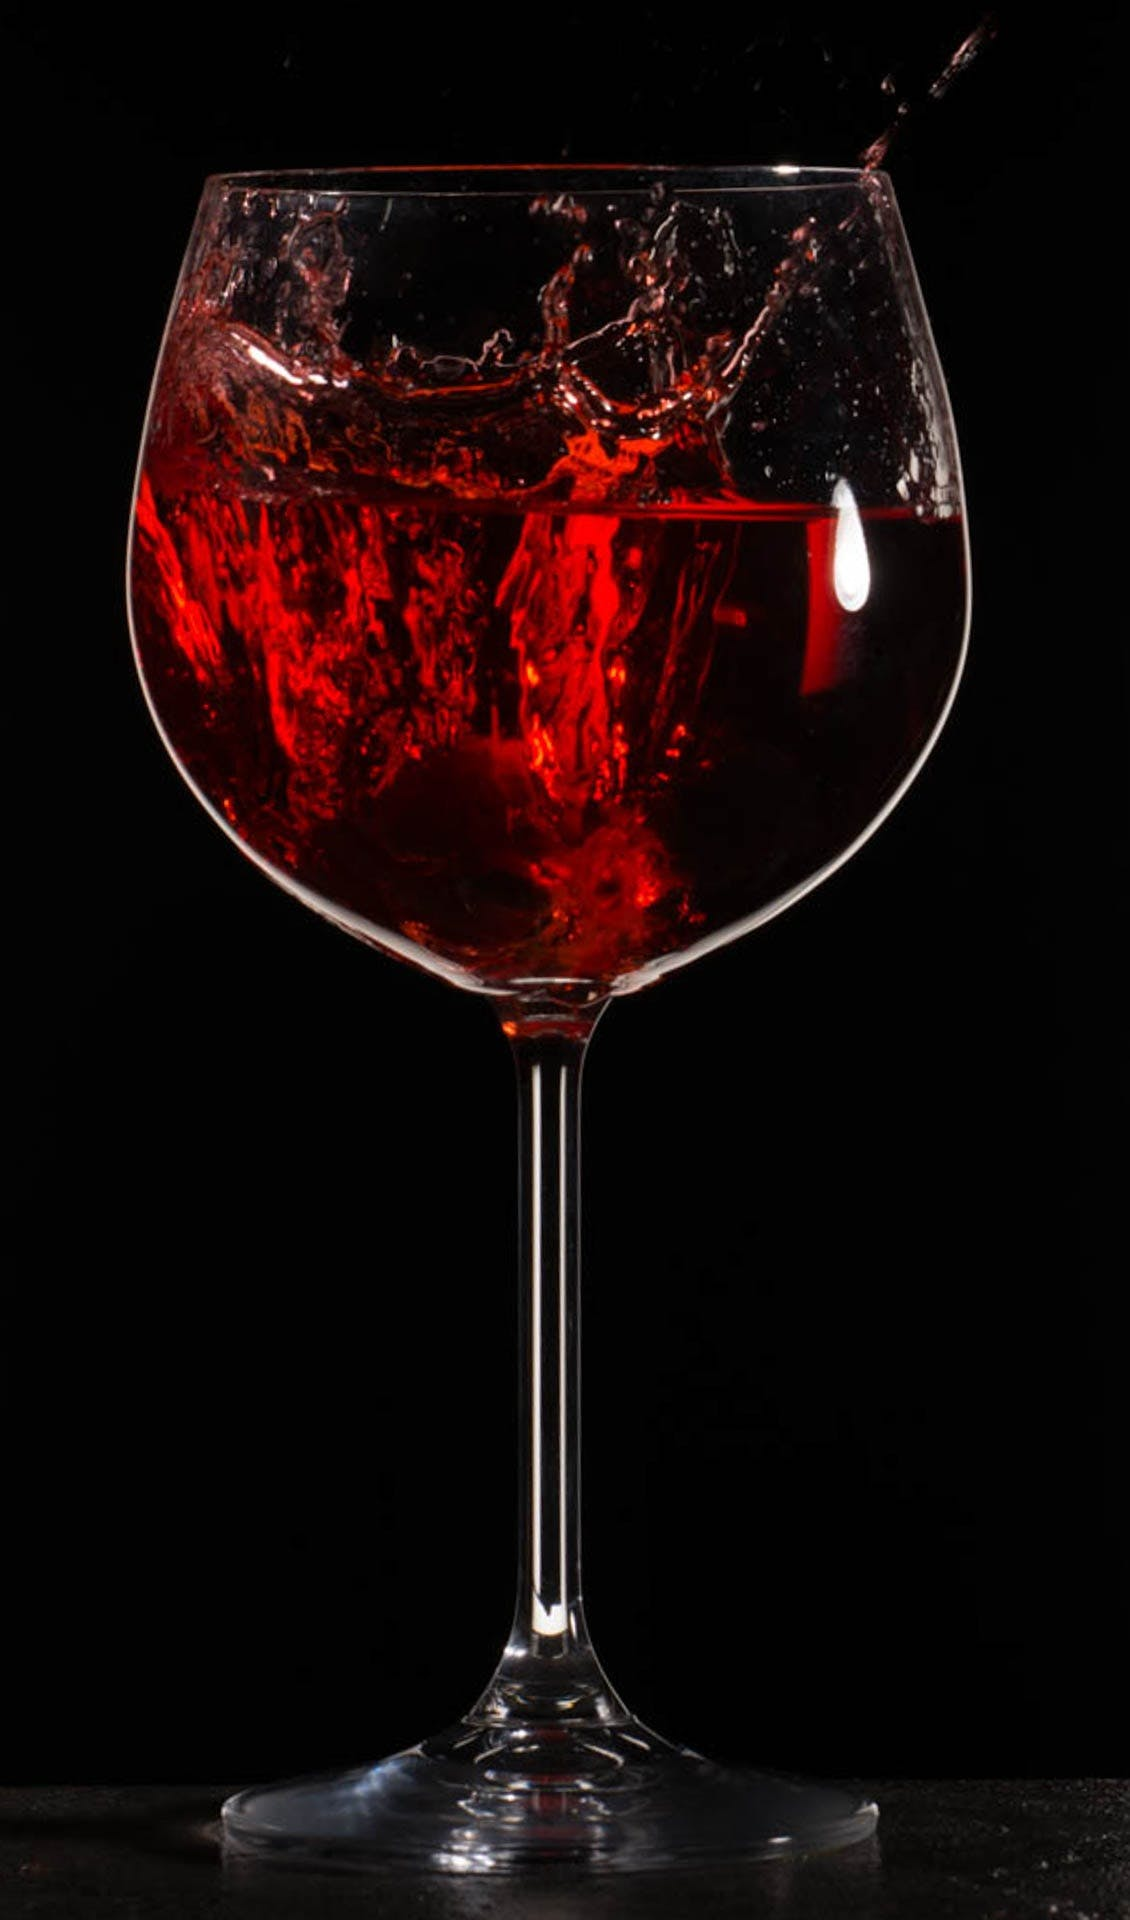 Free stock photo of food, red, drink, glass